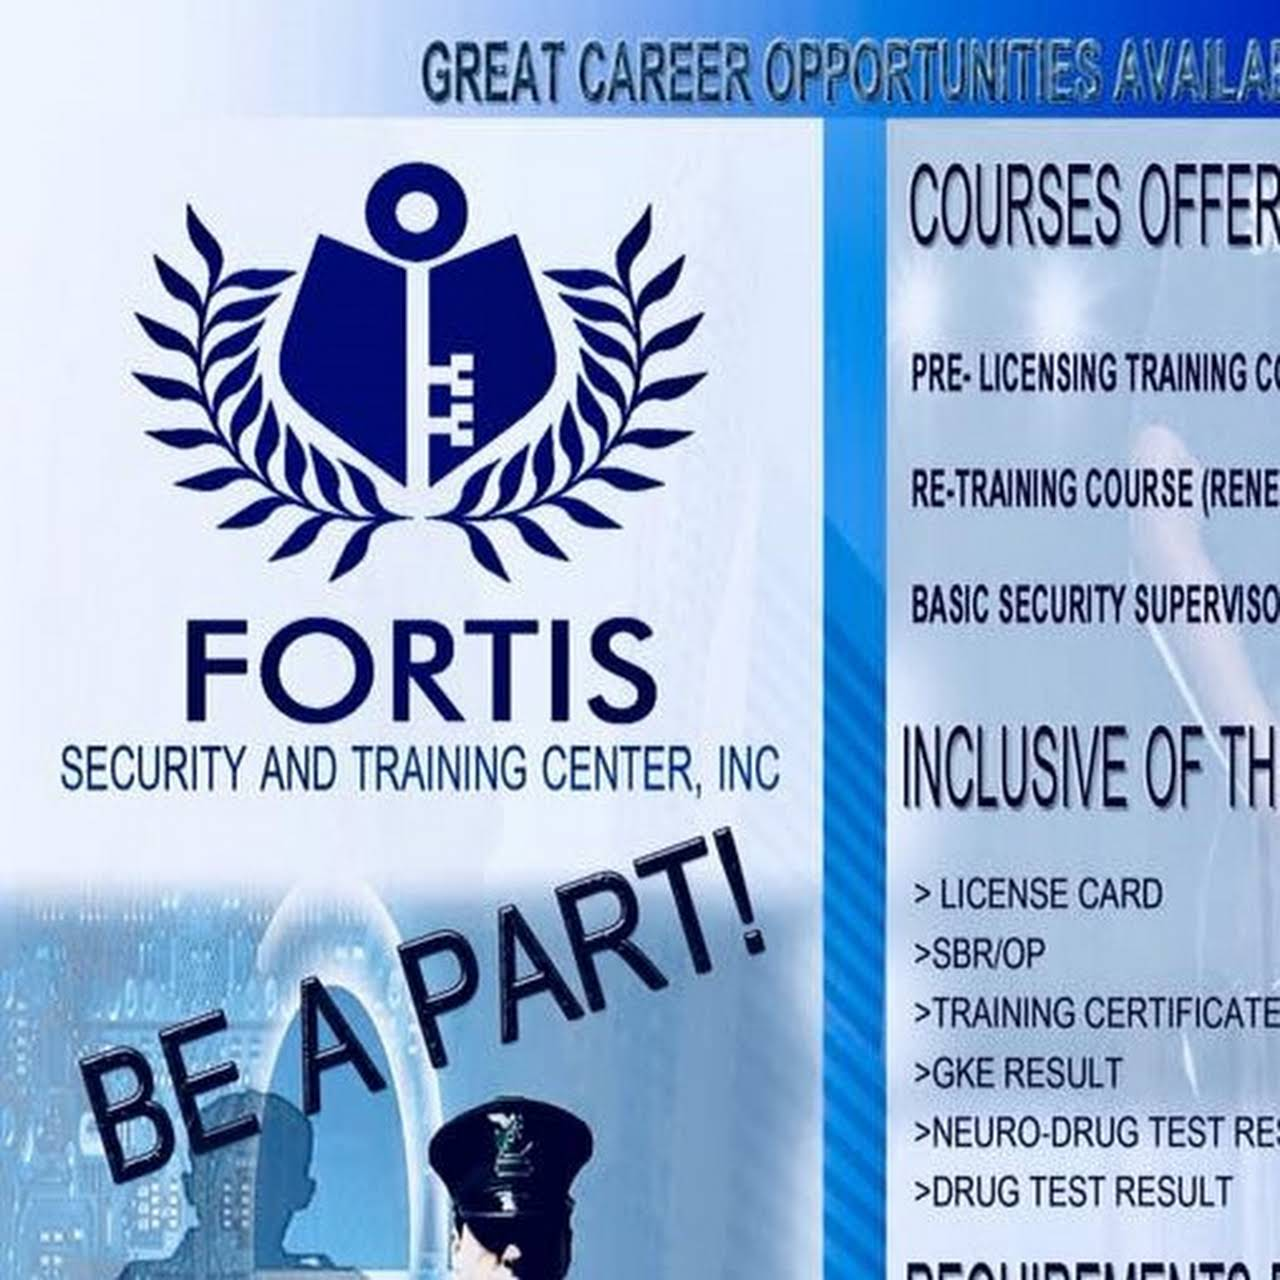 Fortis Security and Training Center Inc  - School in Pulung Maragul